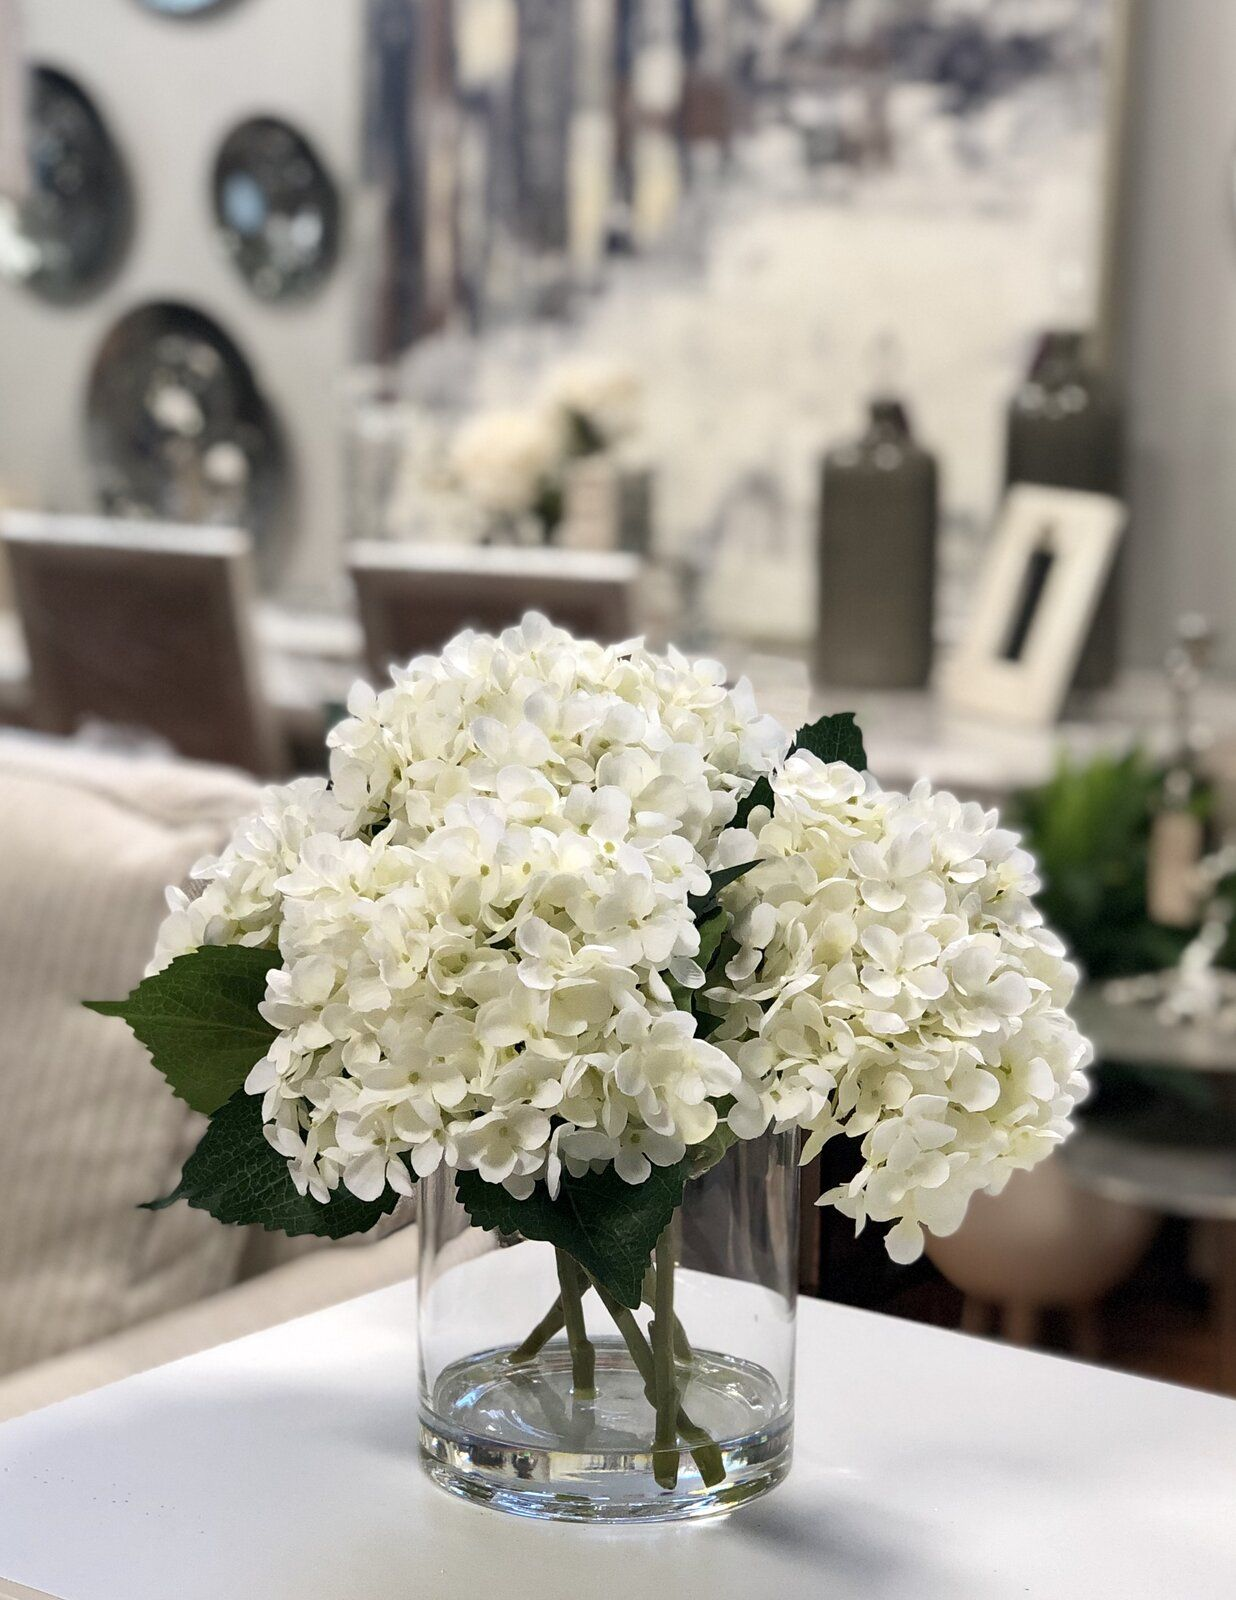 Hydrangea Floral Arrangement In Vase In 2020 Hydrangea Flower Arrangements White Flower Arrangements Hydrangea Arrangements